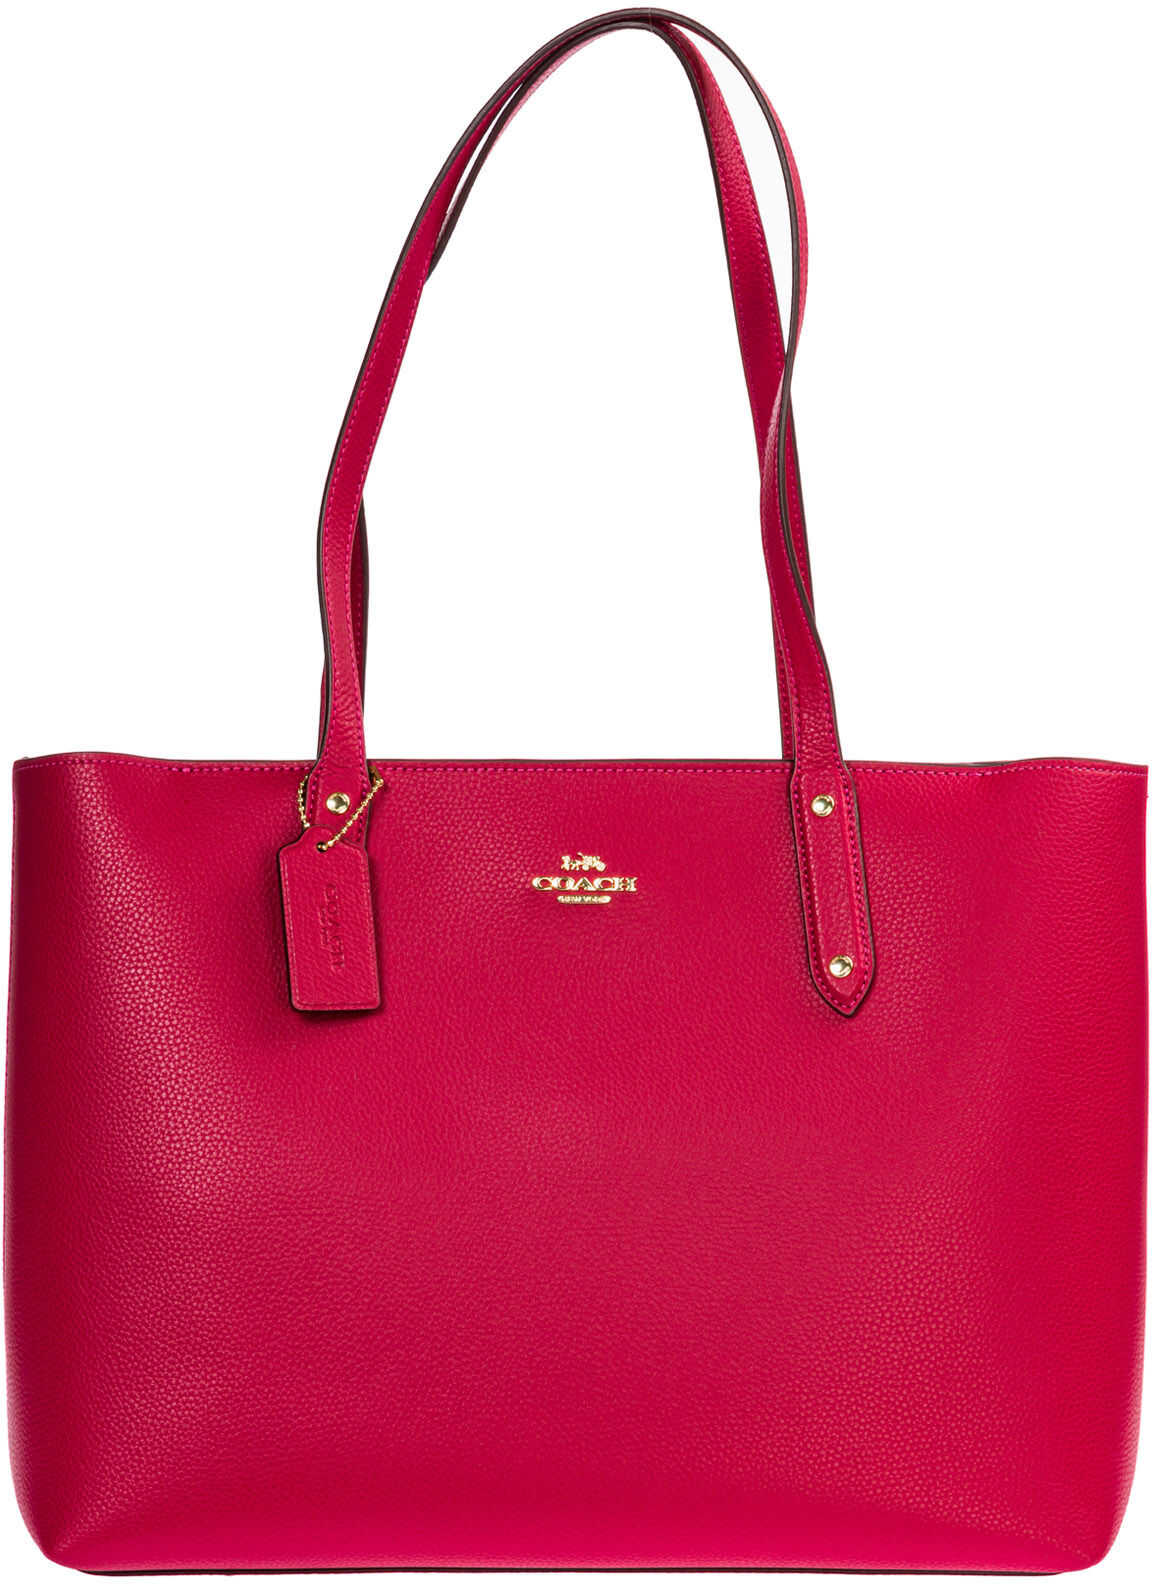 COACH Bag Central Red